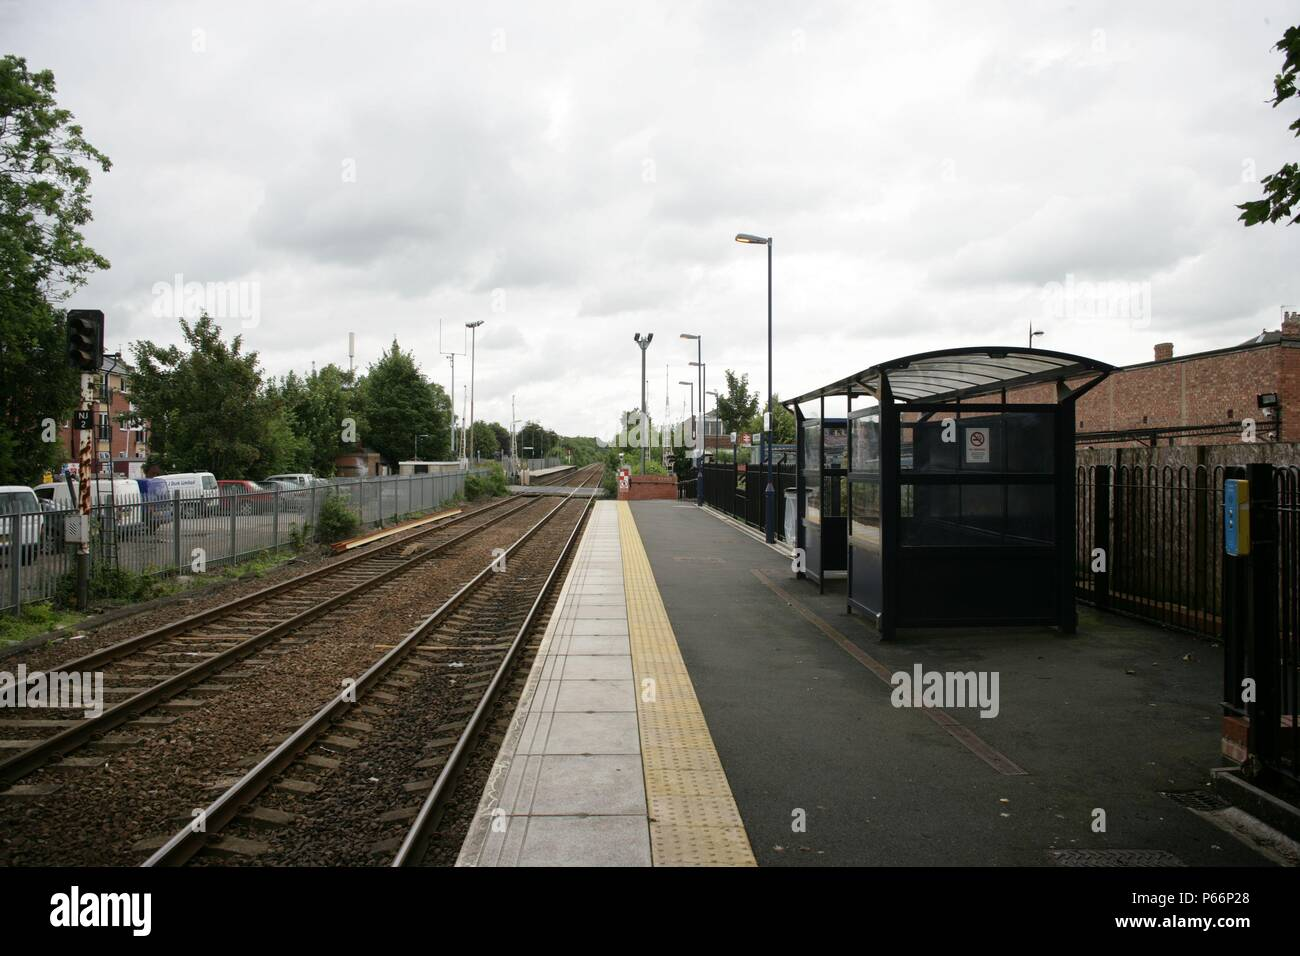 General view of platform and waiting shelter at Carlton station, Nottinghamshire. 2007 - Stock Image